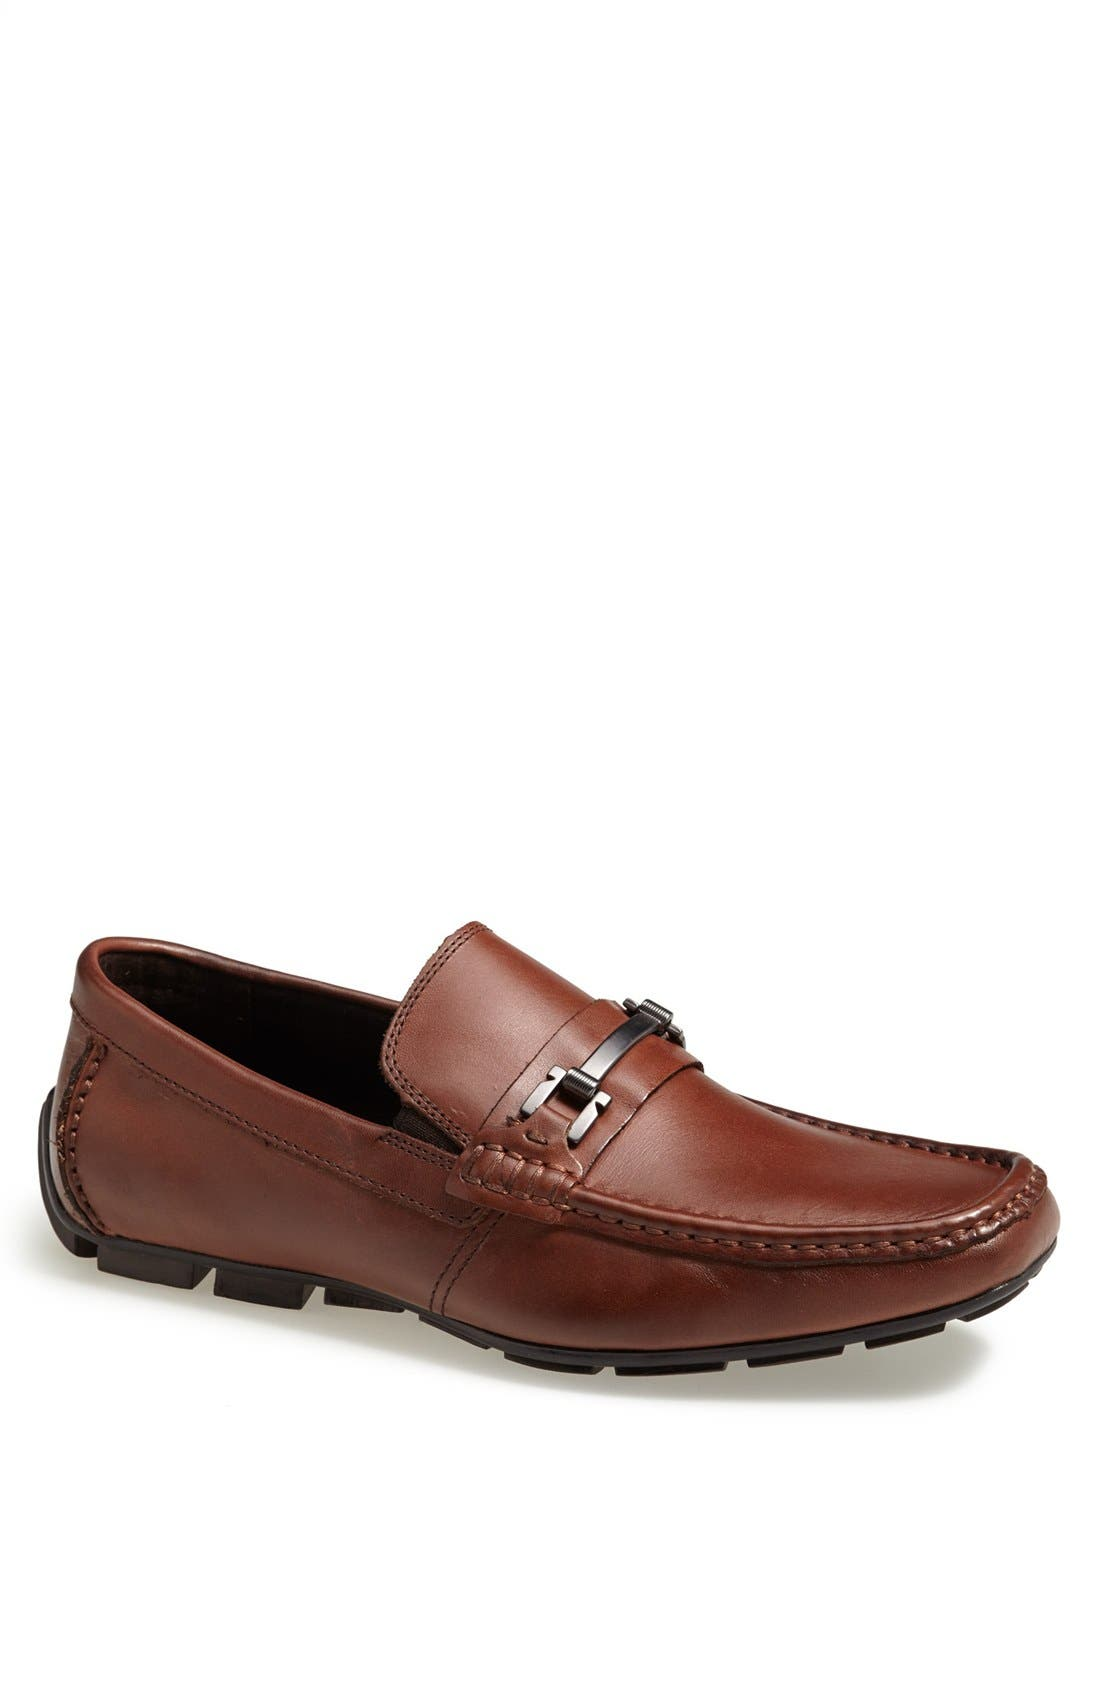 Alternate Image 1 Selected - Kenneth Cole Reaction 'Heavy Traffic' Driving Loafer